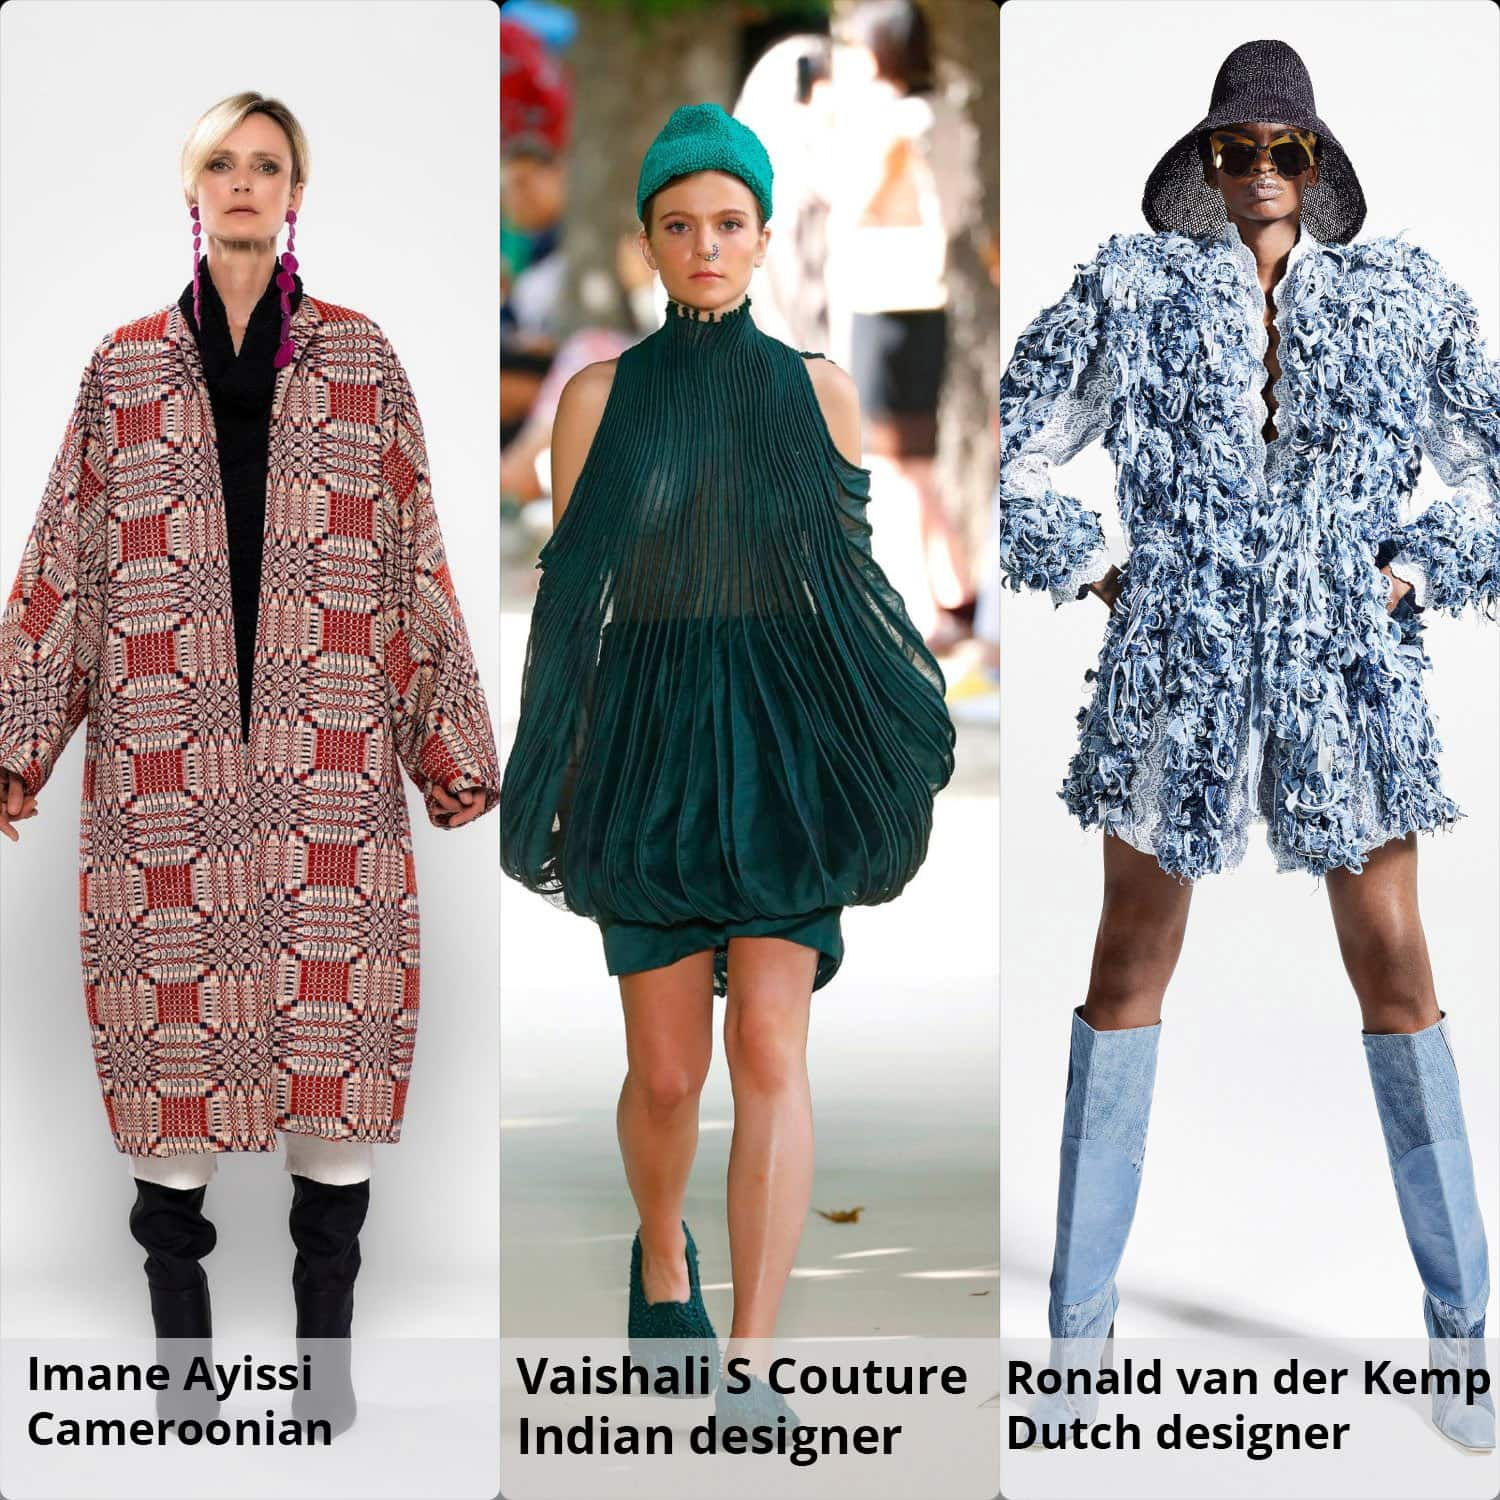 Haute Couture Fall Winter 2021-2022 Ronald van der Kemp (Dutch), Imane Ayissi (Cameroonian), Vaishali S Couture (Indian) by RUNWAY MAGAZINE